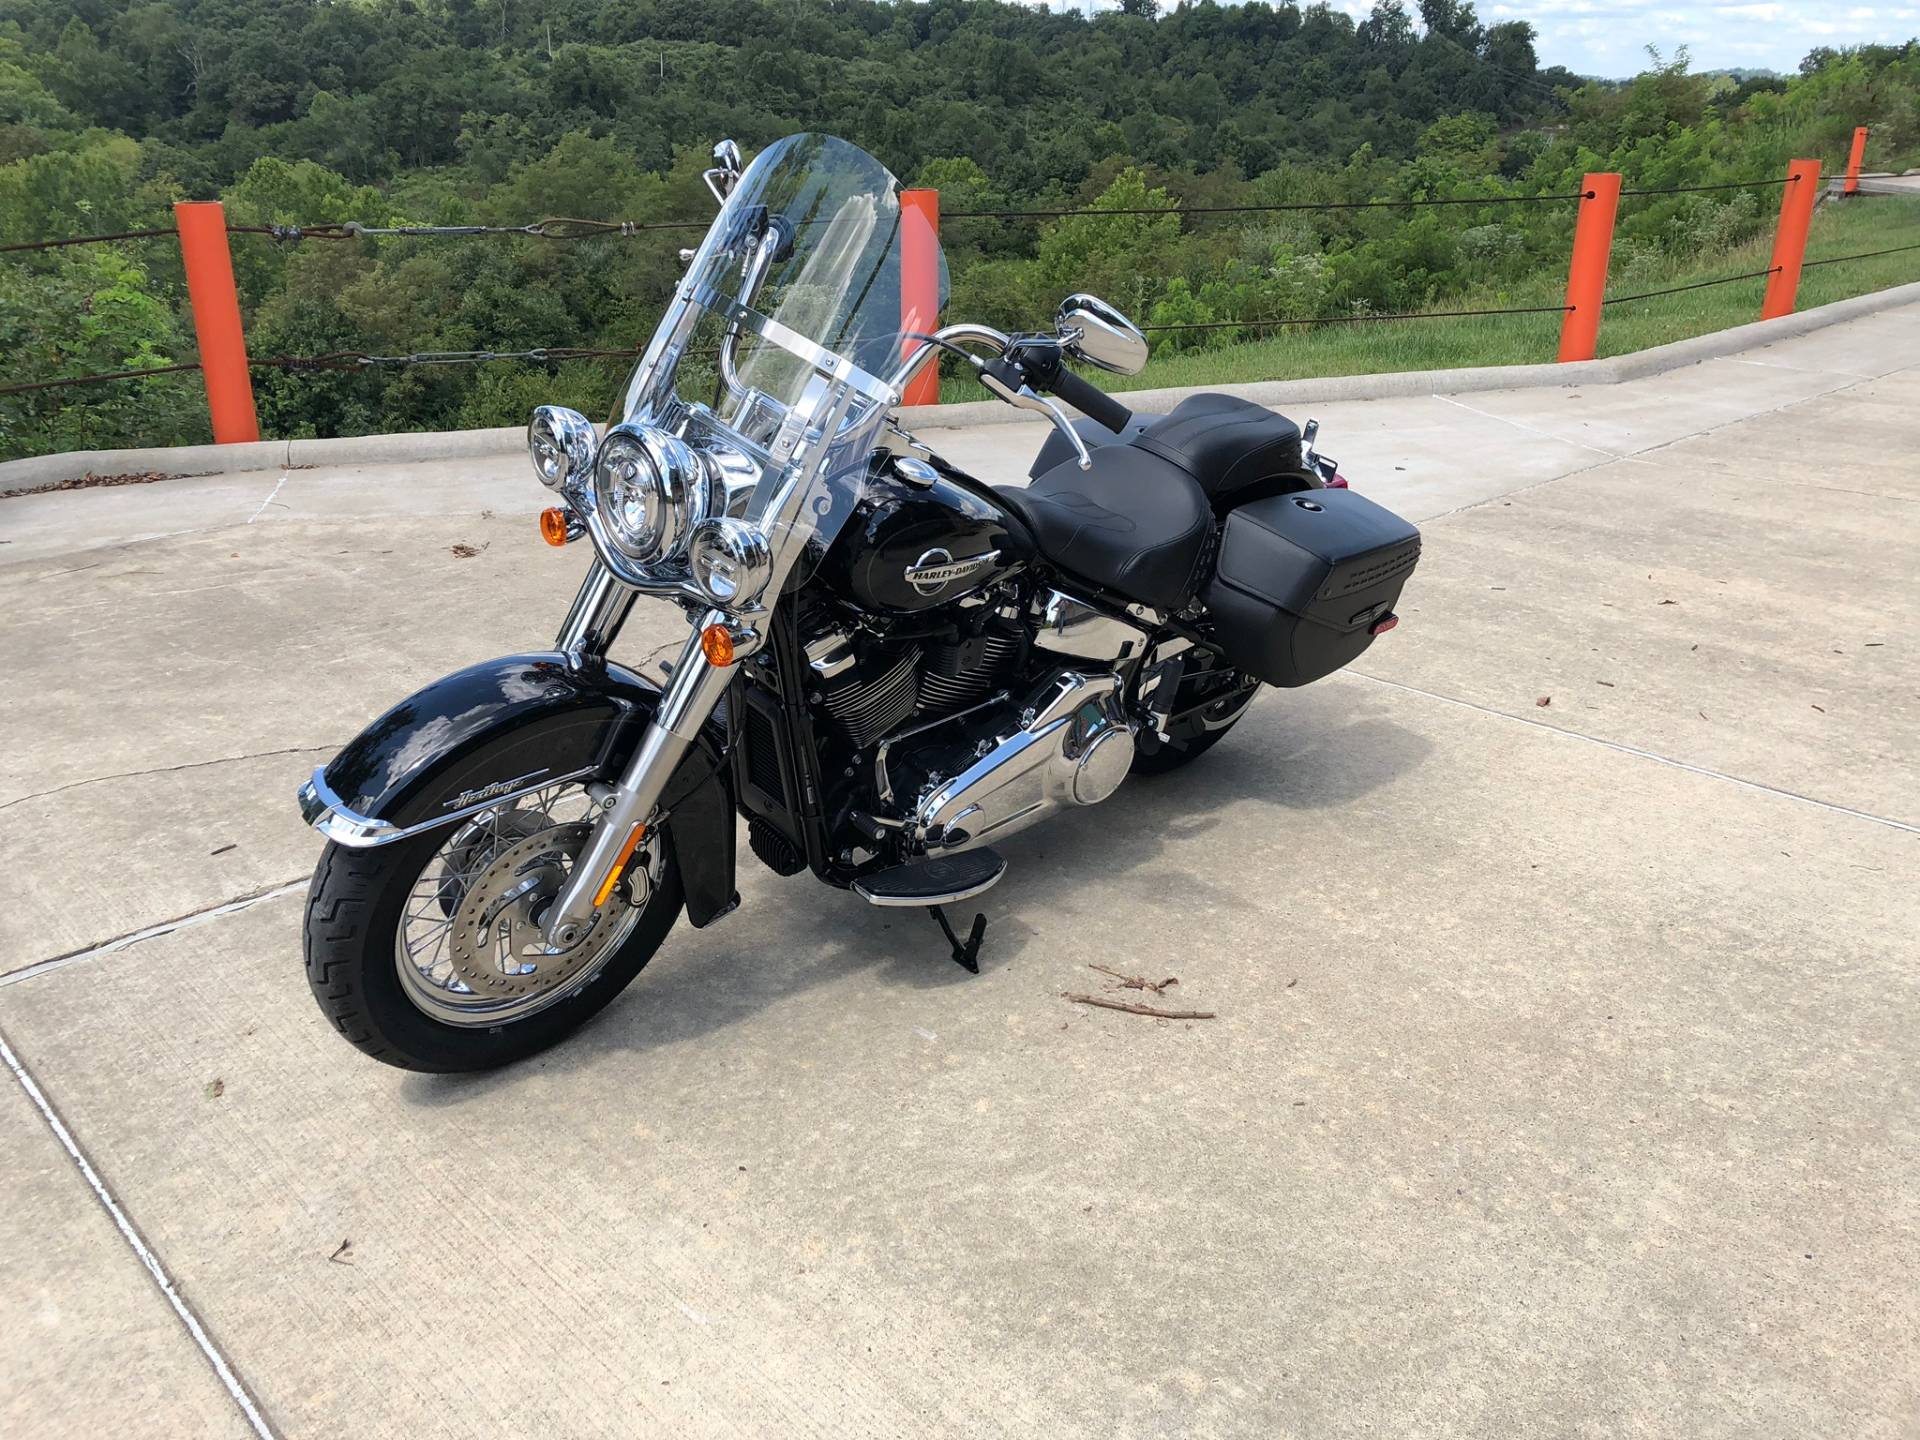 2020 Harley-Davidson Heritage 107 in Williamstown, West Virginia - Photo 4